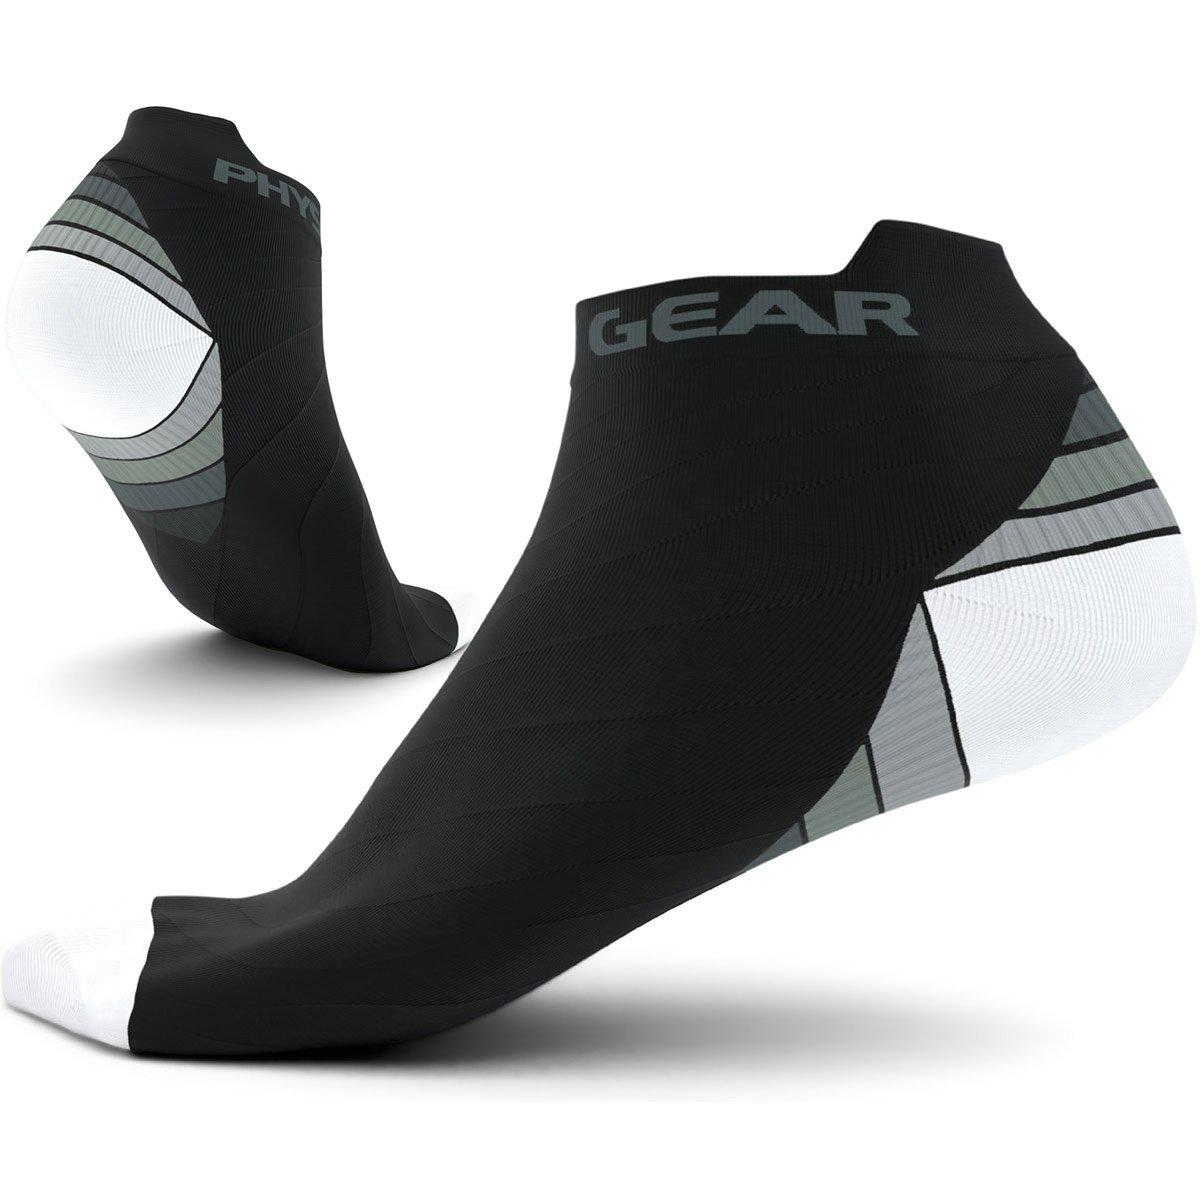 Low Cut Compression Socks - Black & White (2 Pairs)-Physix Gear Sport